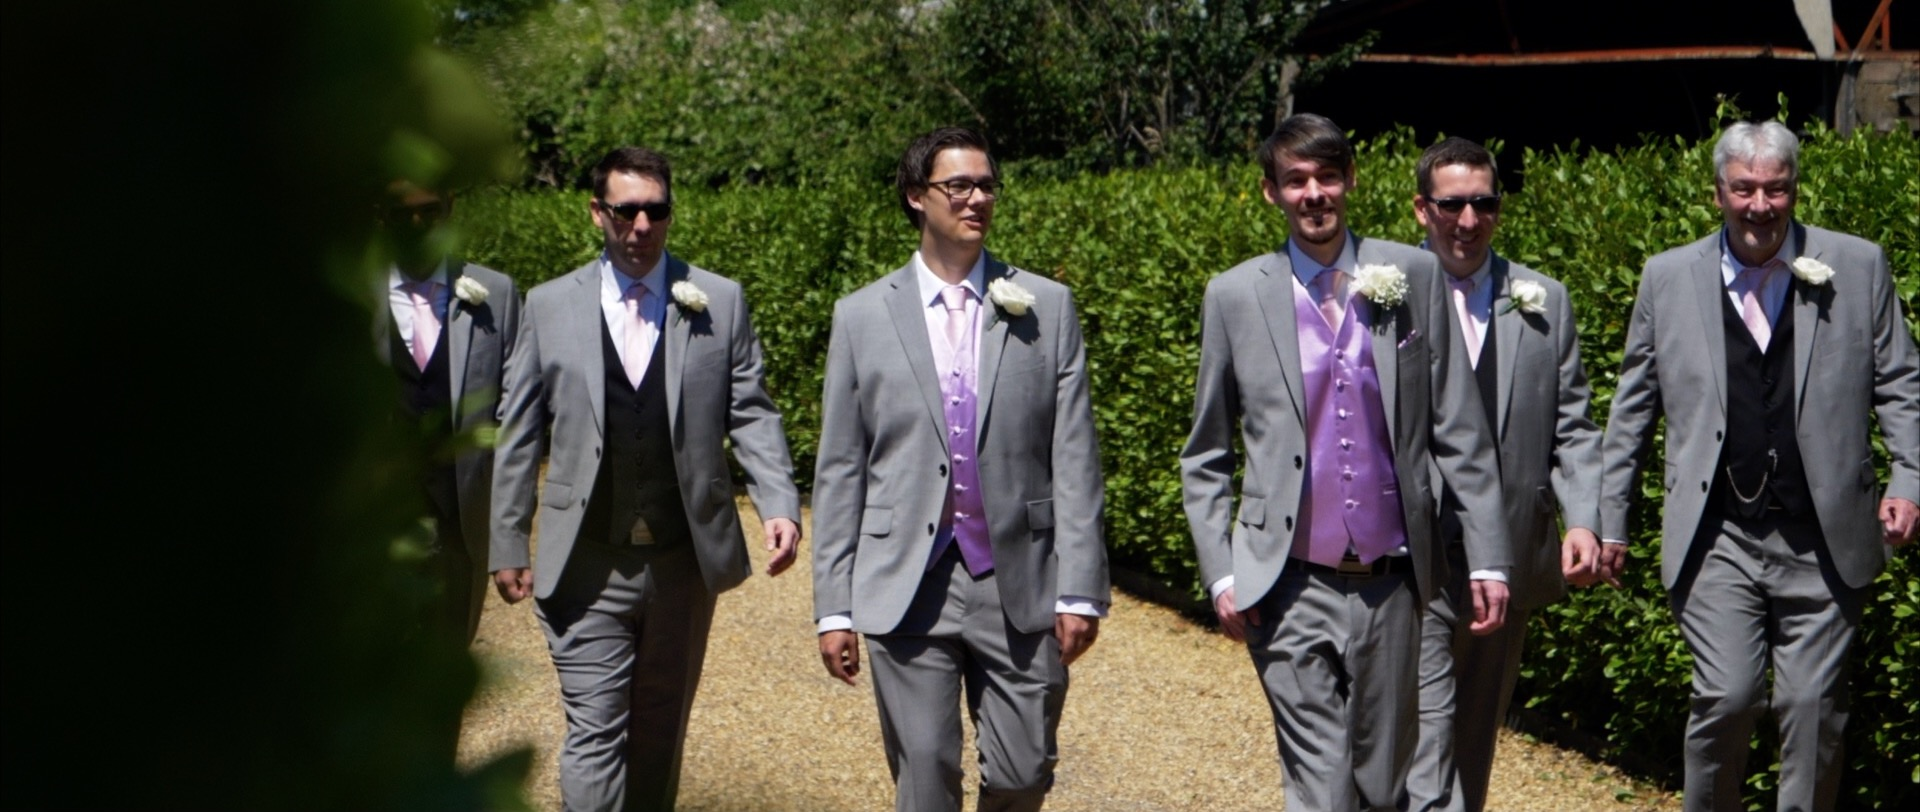 High House Wedding Video Groom Entrance.jpg